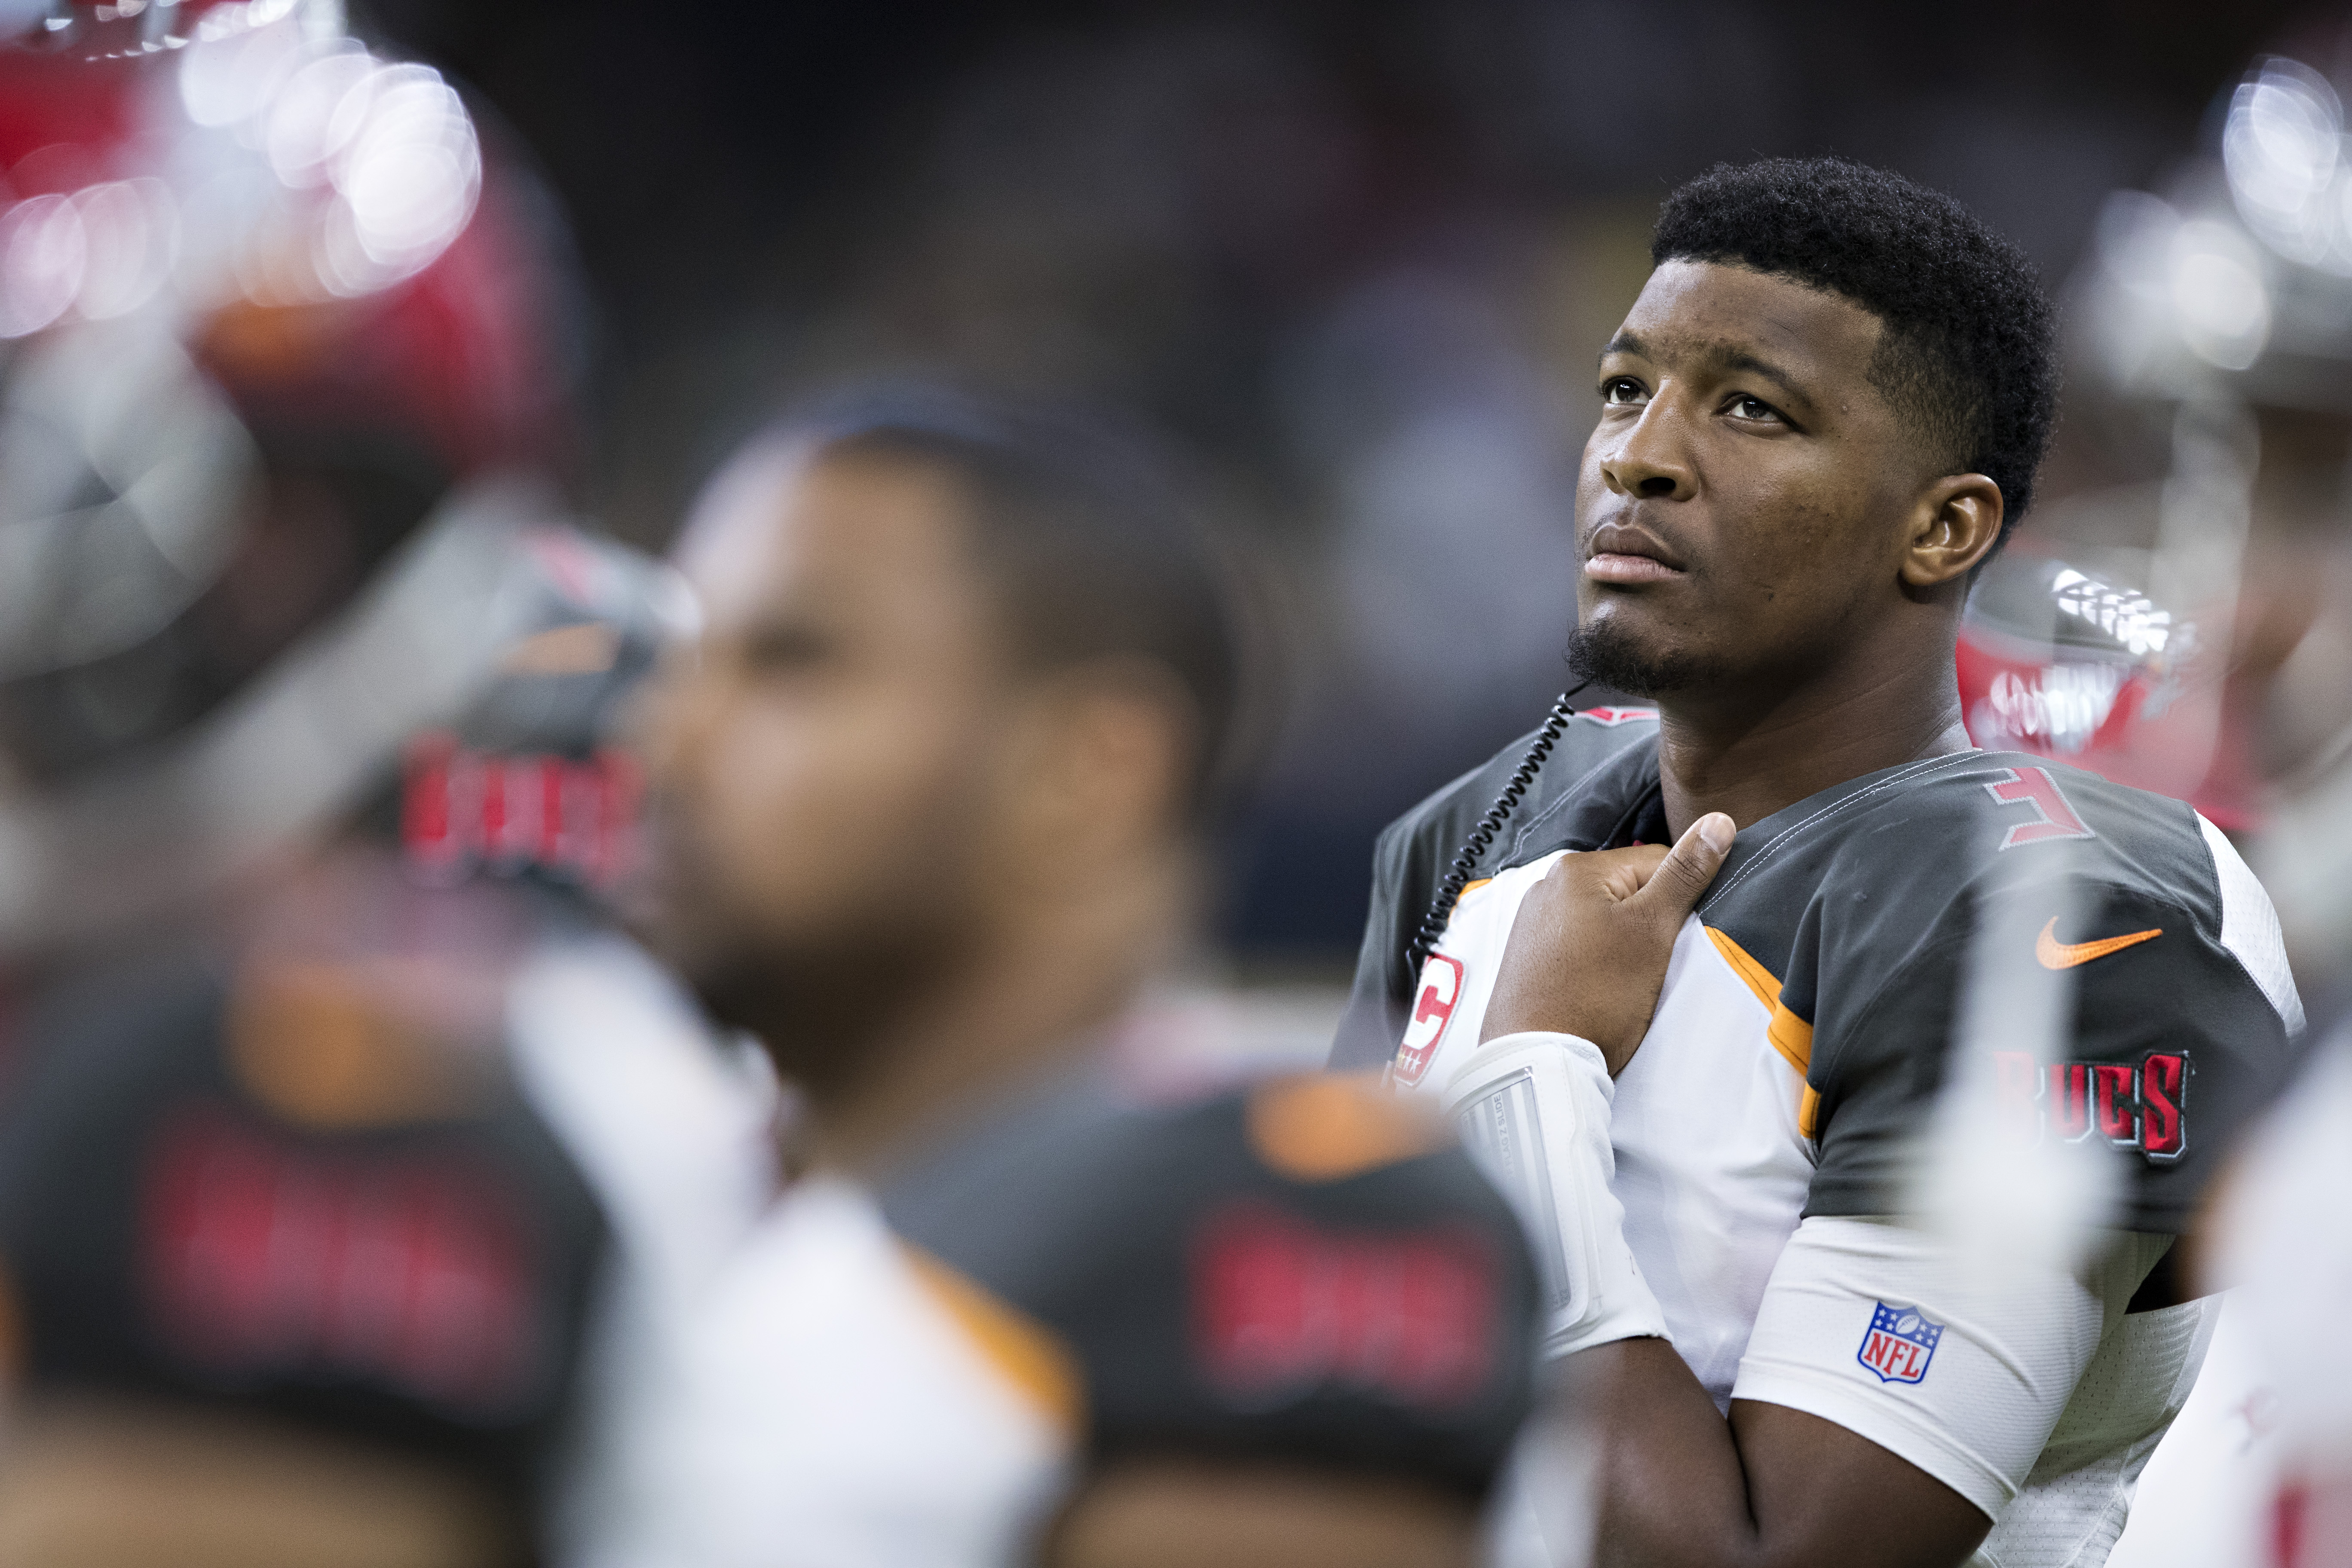 Bucs' QB Jameis Winston out at least 2 weeks with shoulder injury